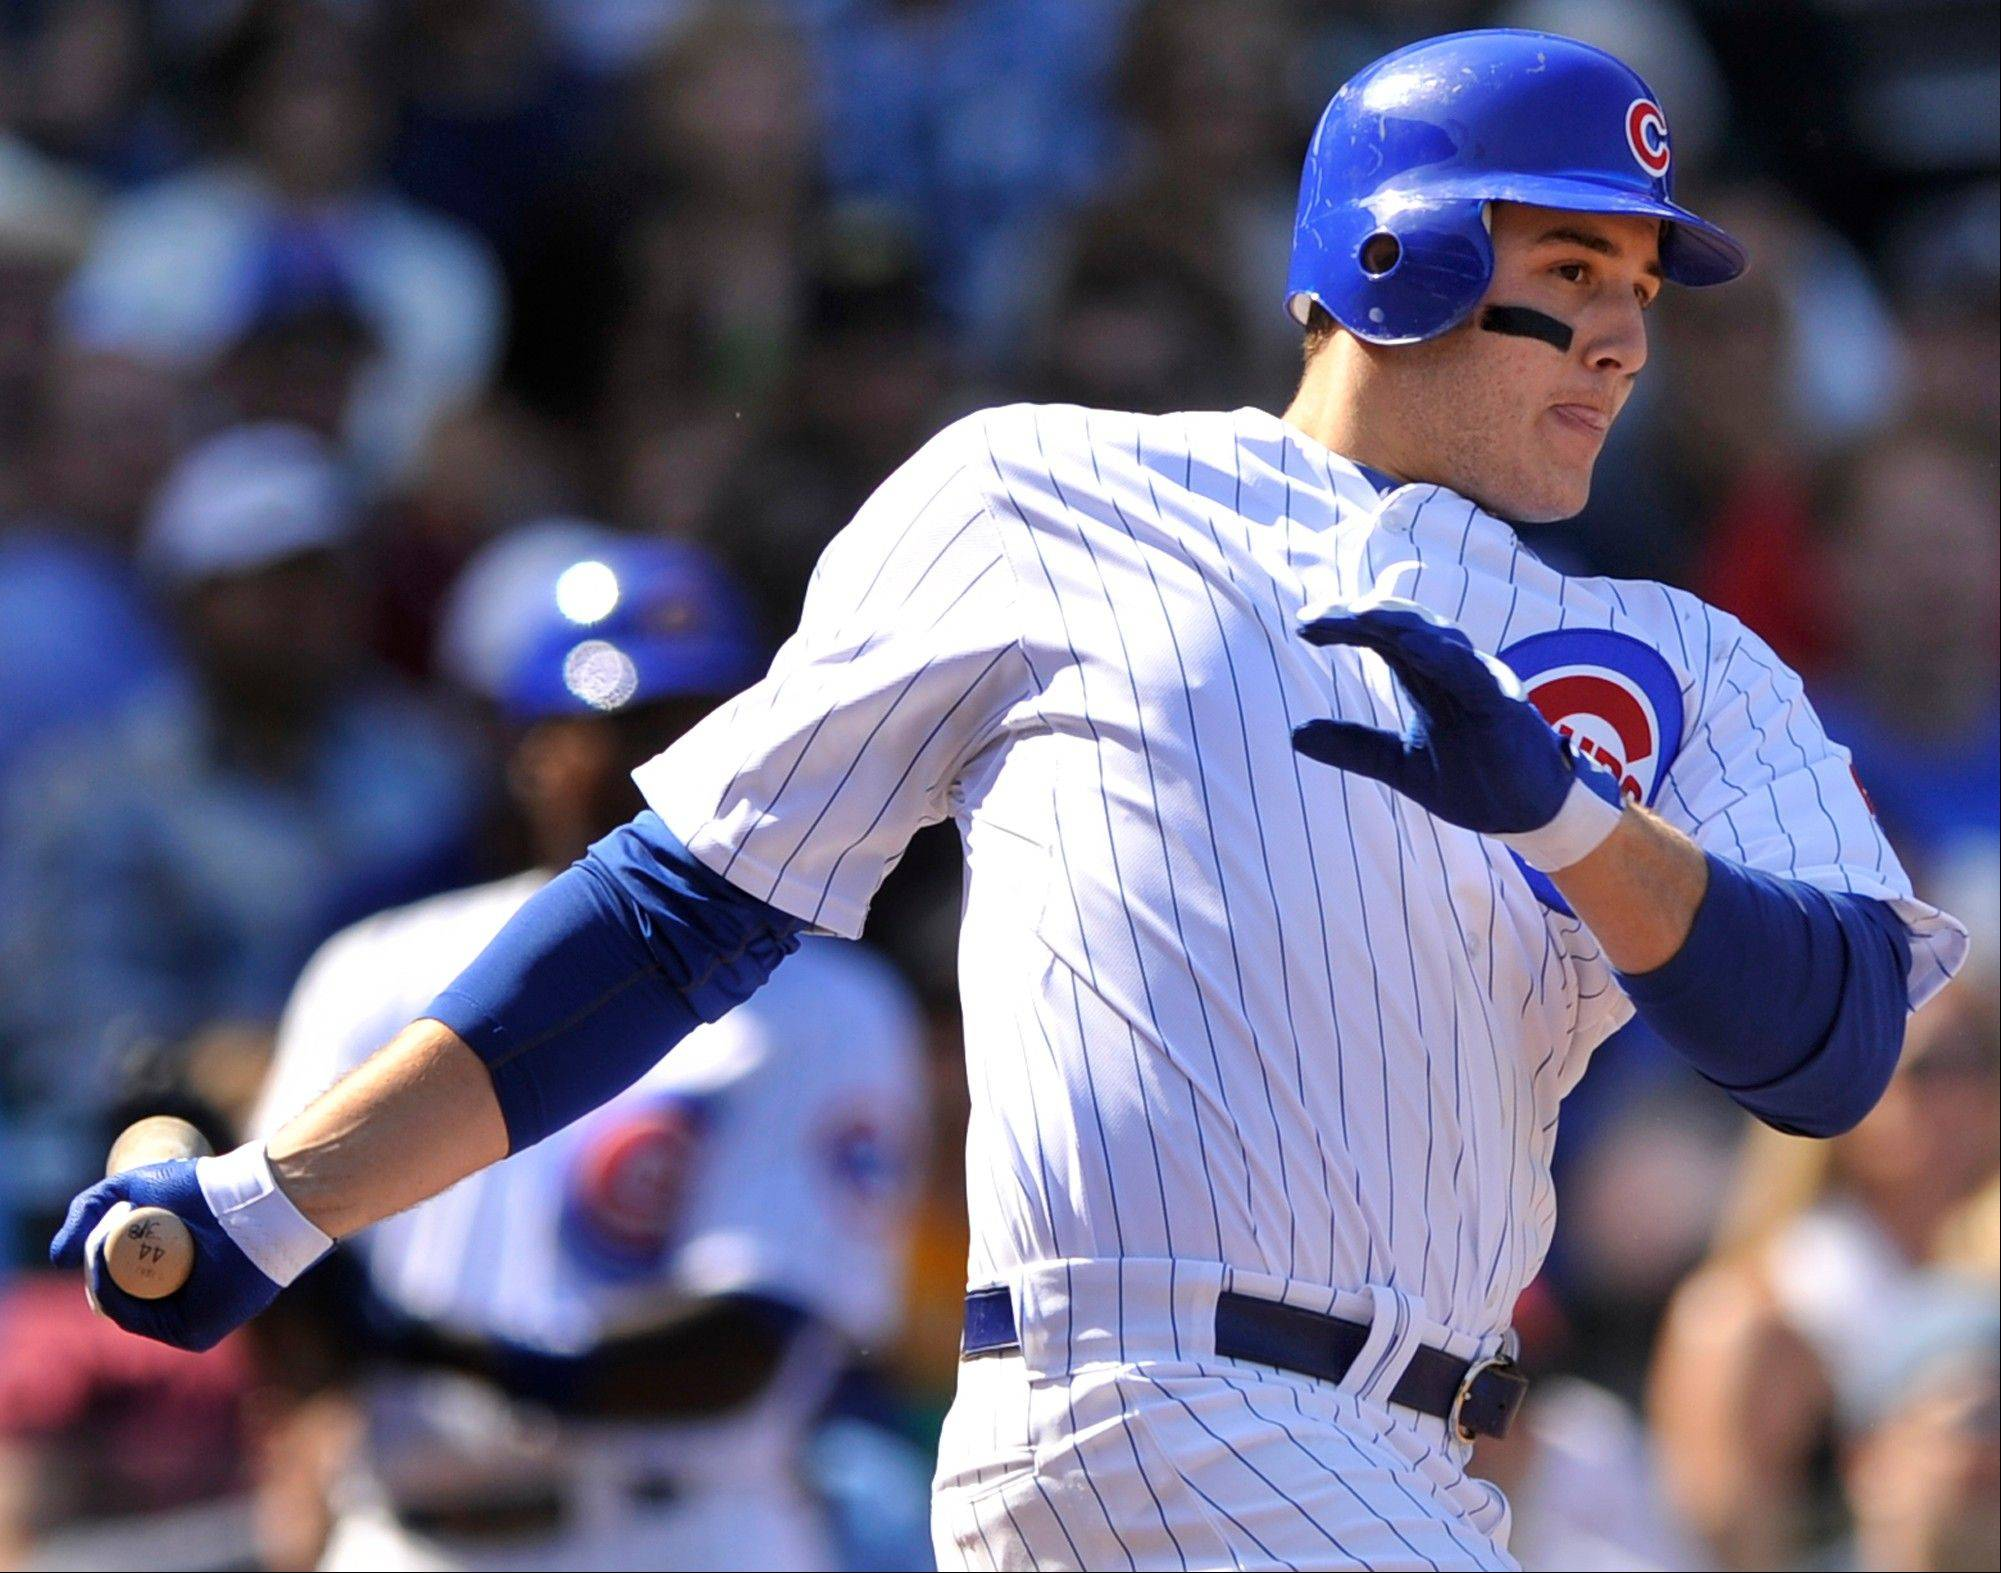 Cubs first baseman Anthony Rizzo will take some time away from the team this spring to represent Team Italy in the World Baseball Classic.